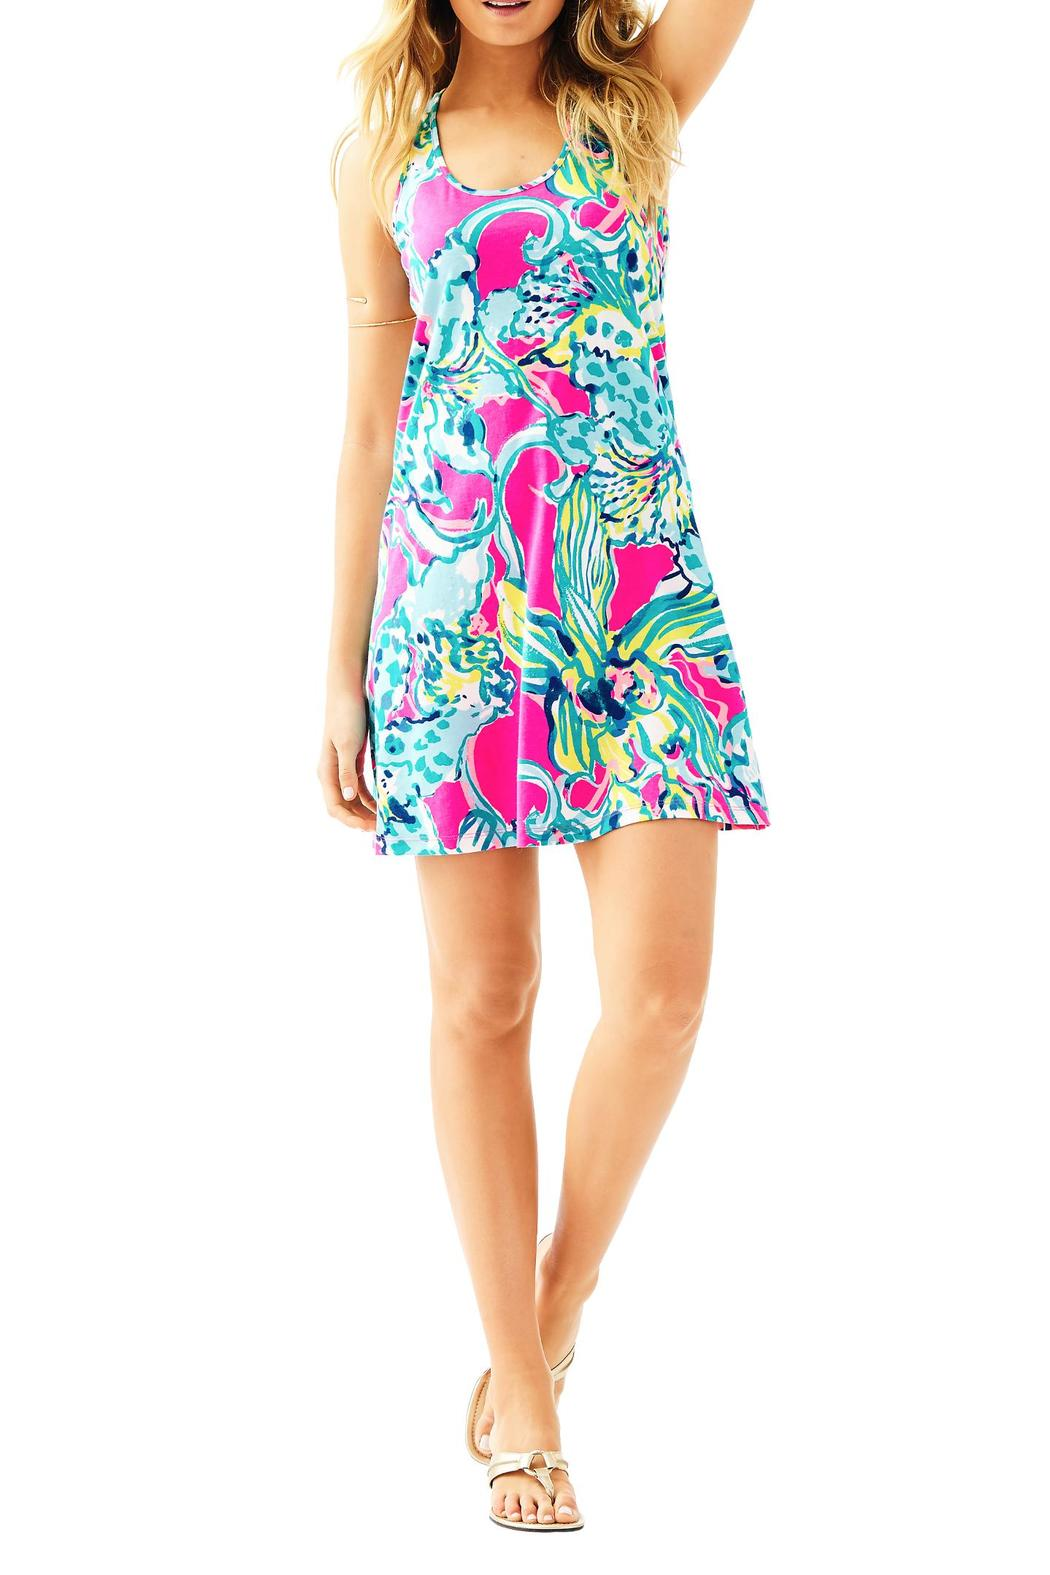 Lilly Pulitzer Melle Trapeze Tank Dress From Sandestin